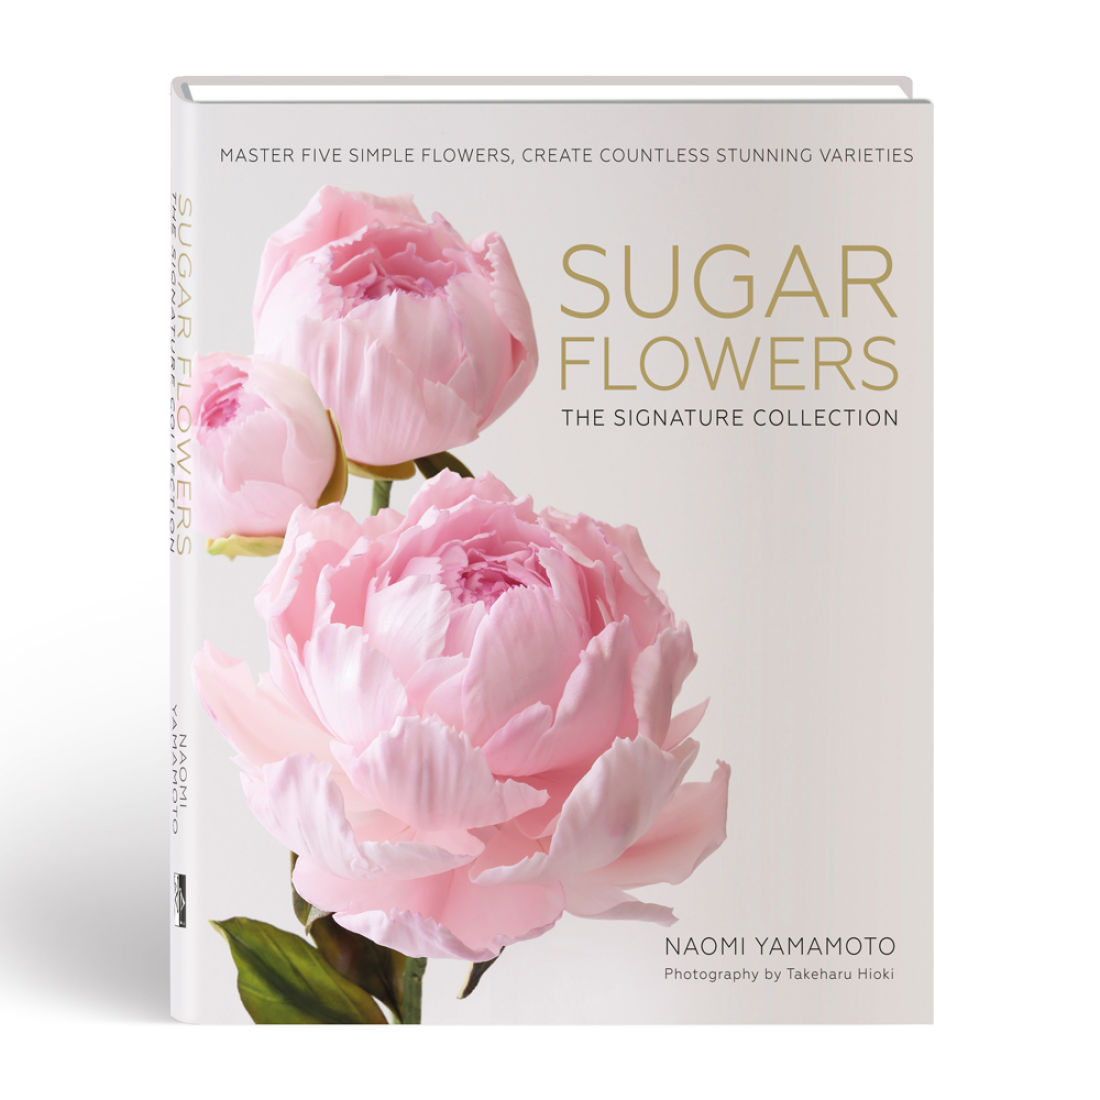 Image of Sugar flowers - The signature collection